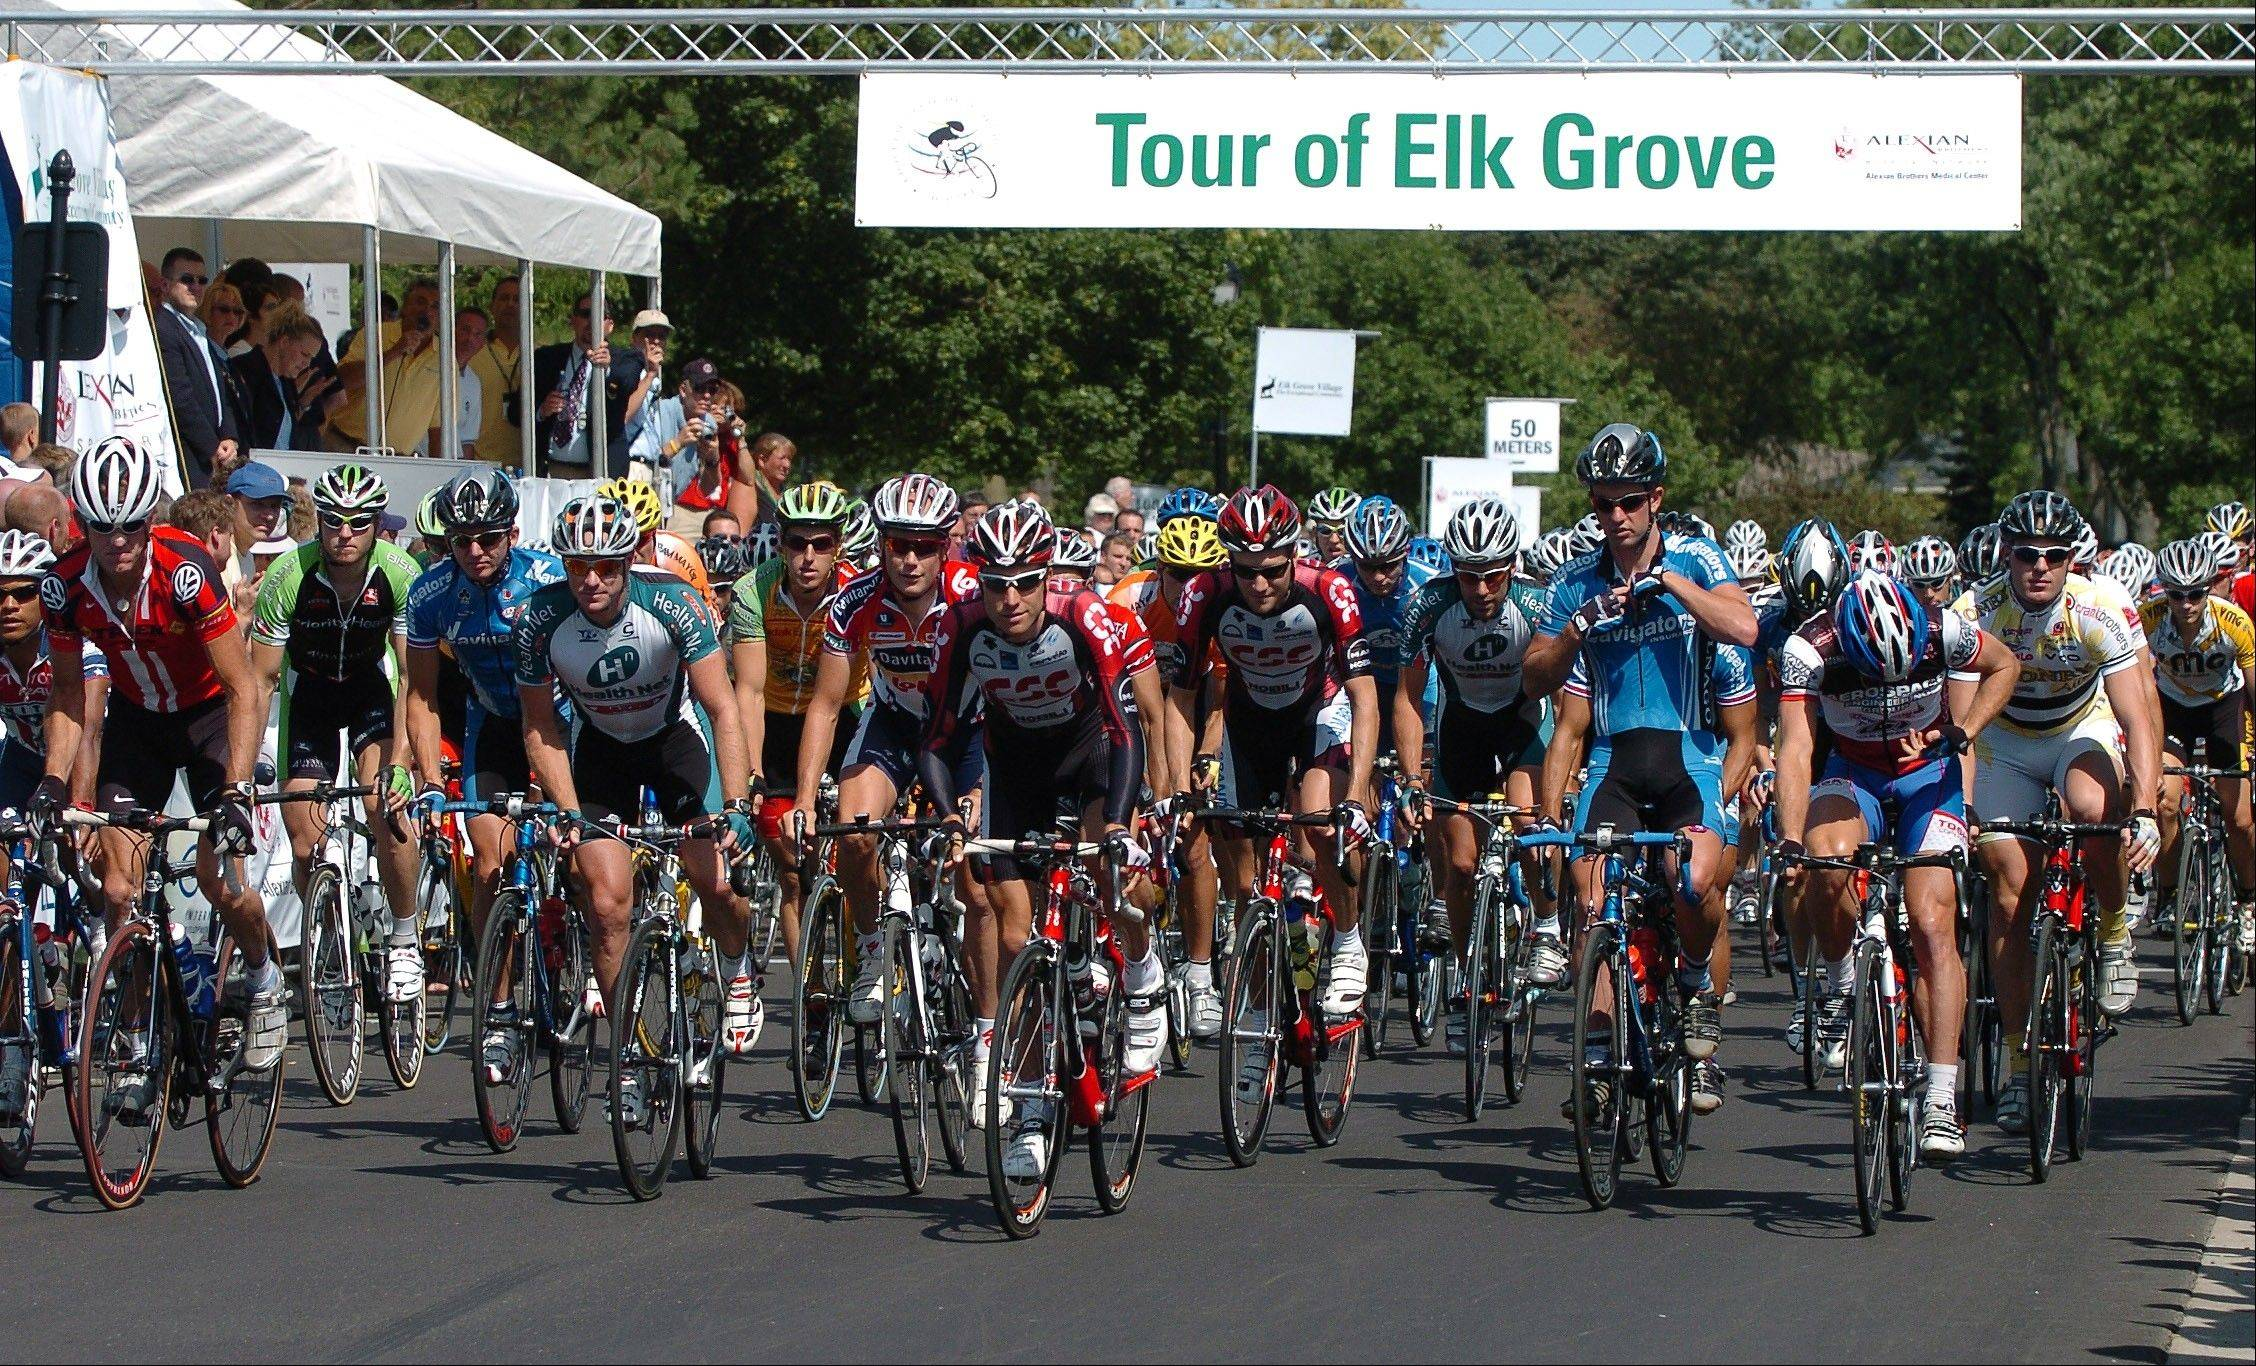 Despite Elk Grove Village�s decision to cancel the Tour of Elk Grove because of a scheduling conflict with another top cycling event, an official at USA Cycling said Monday the organization believes the two events can coexist and both attract elite-level riders.